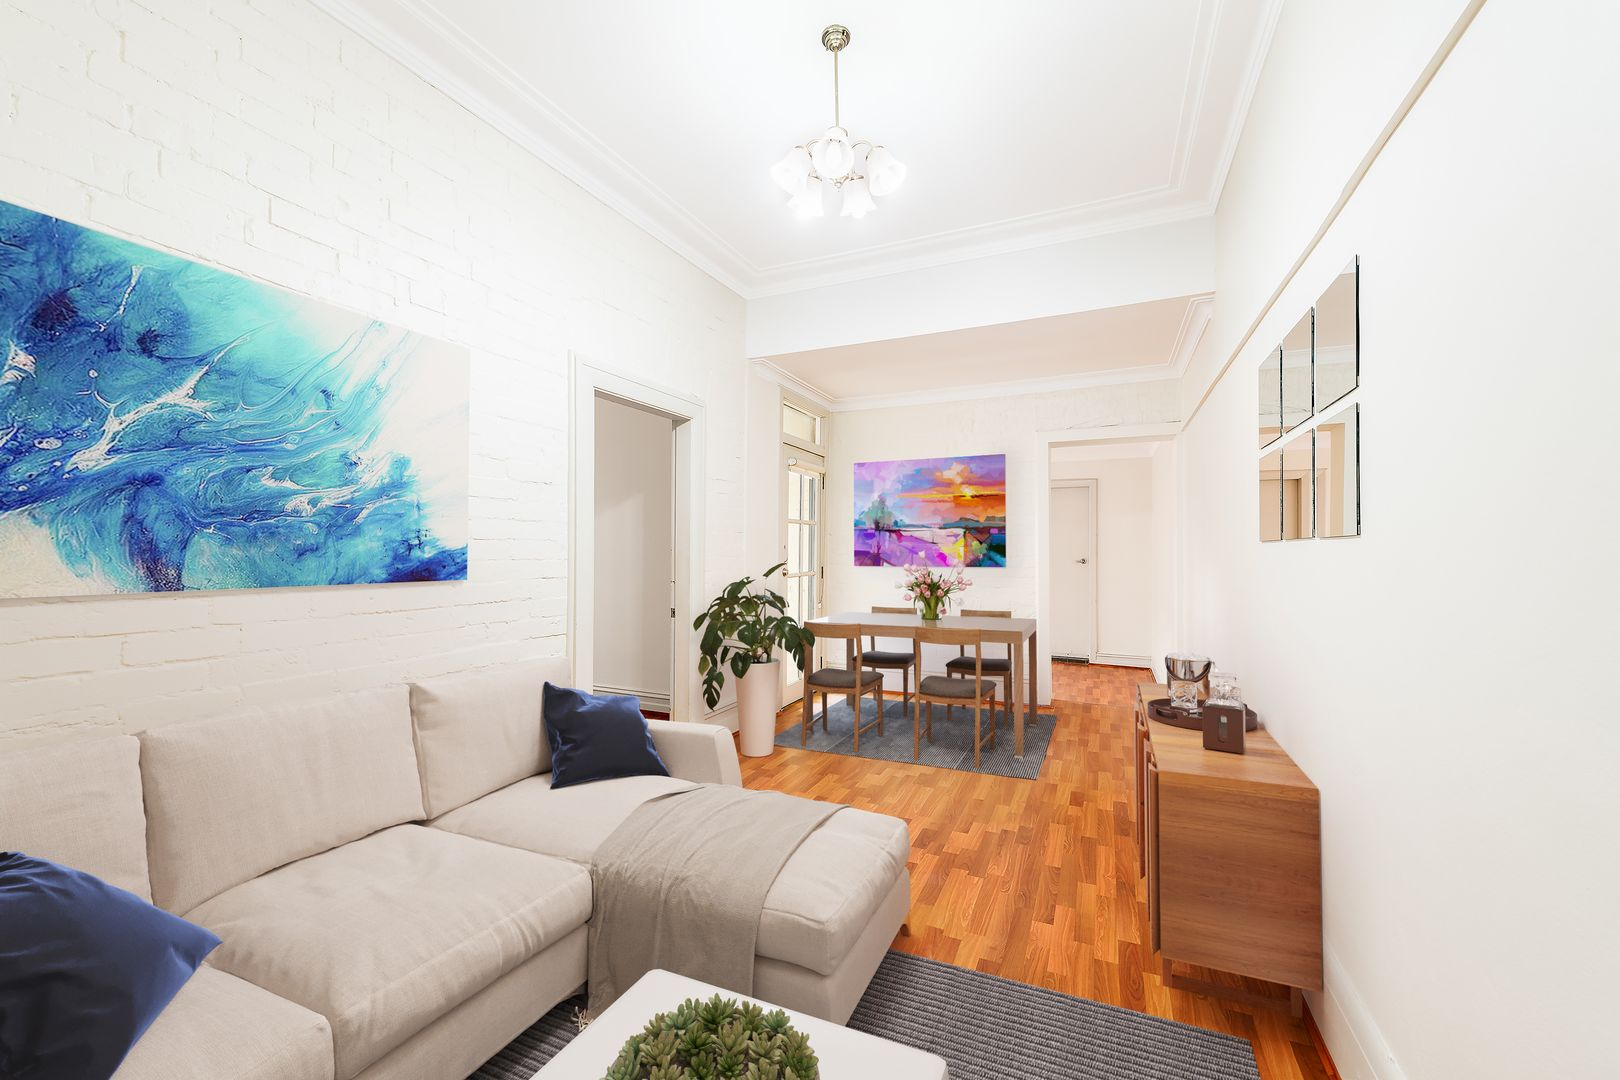 2 bedrooms House in 29 Mitchell Road ALEXANDRIA NSW, 2015